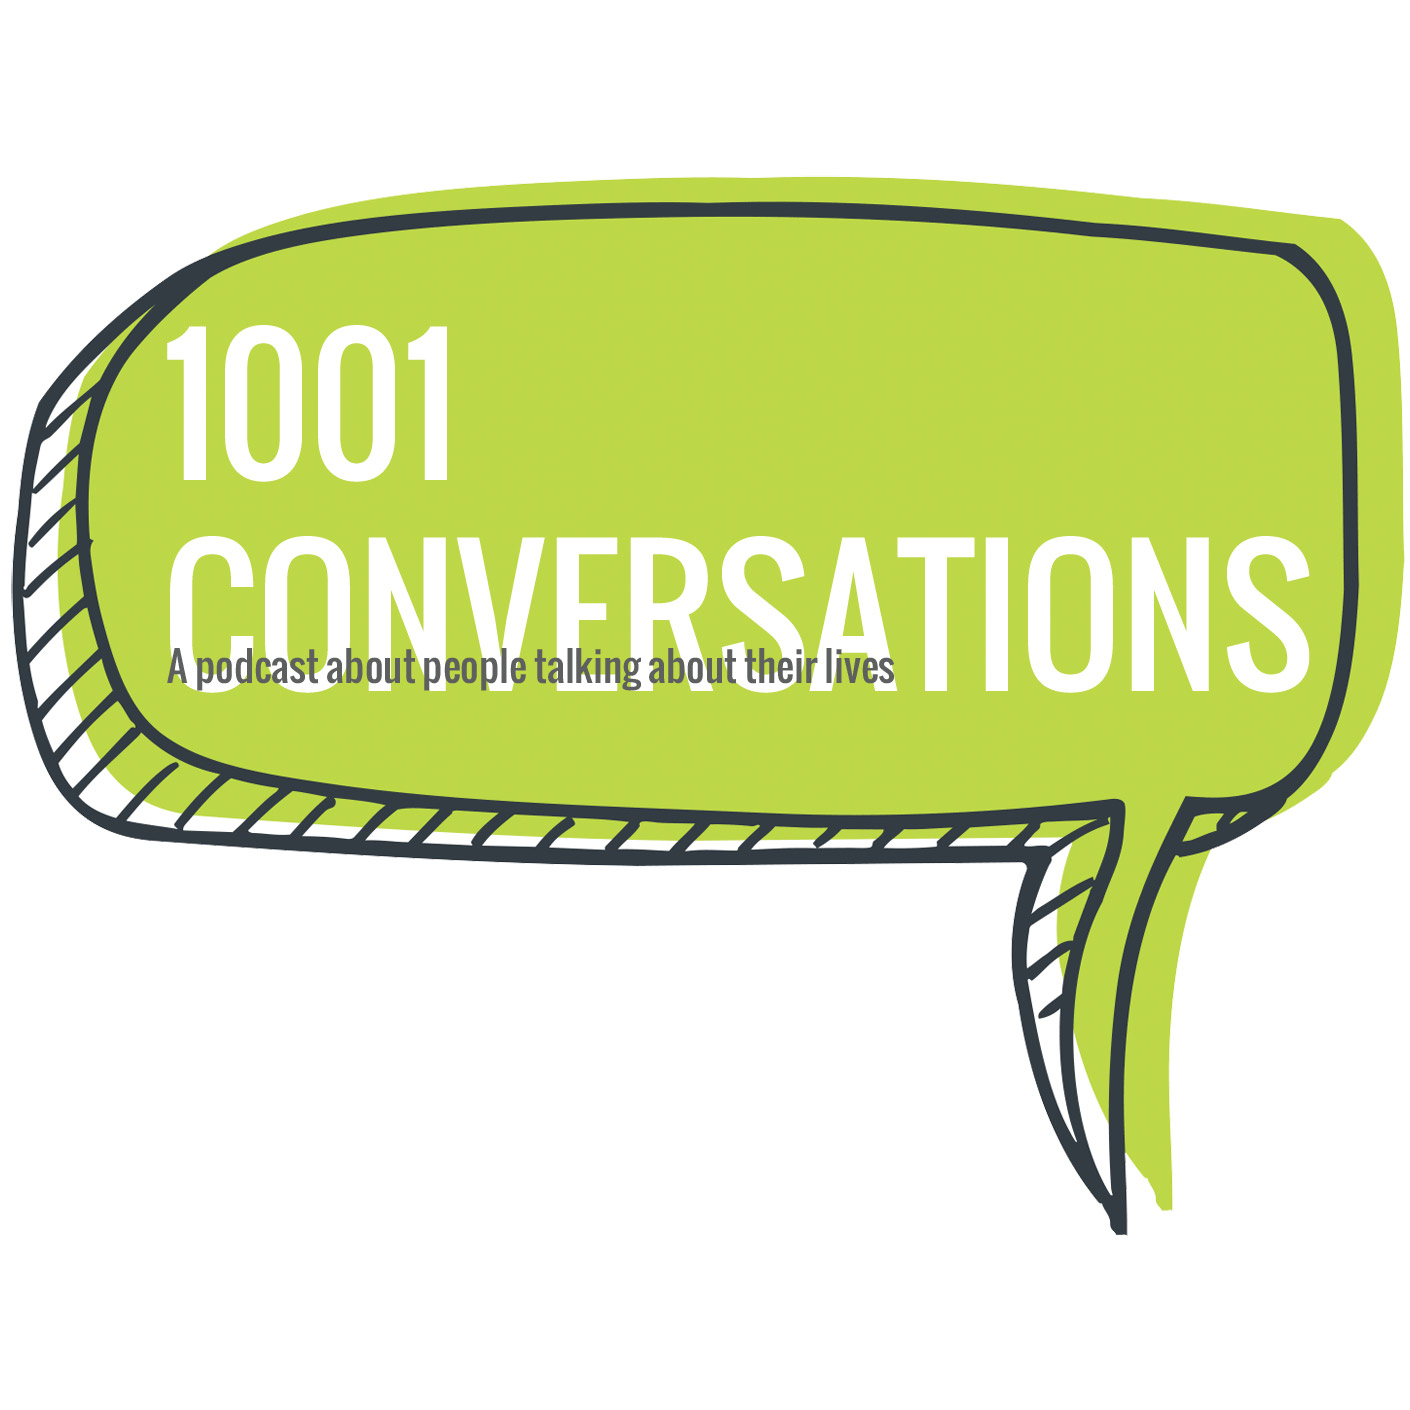 1001 Conversations » A podcast about people talking about life